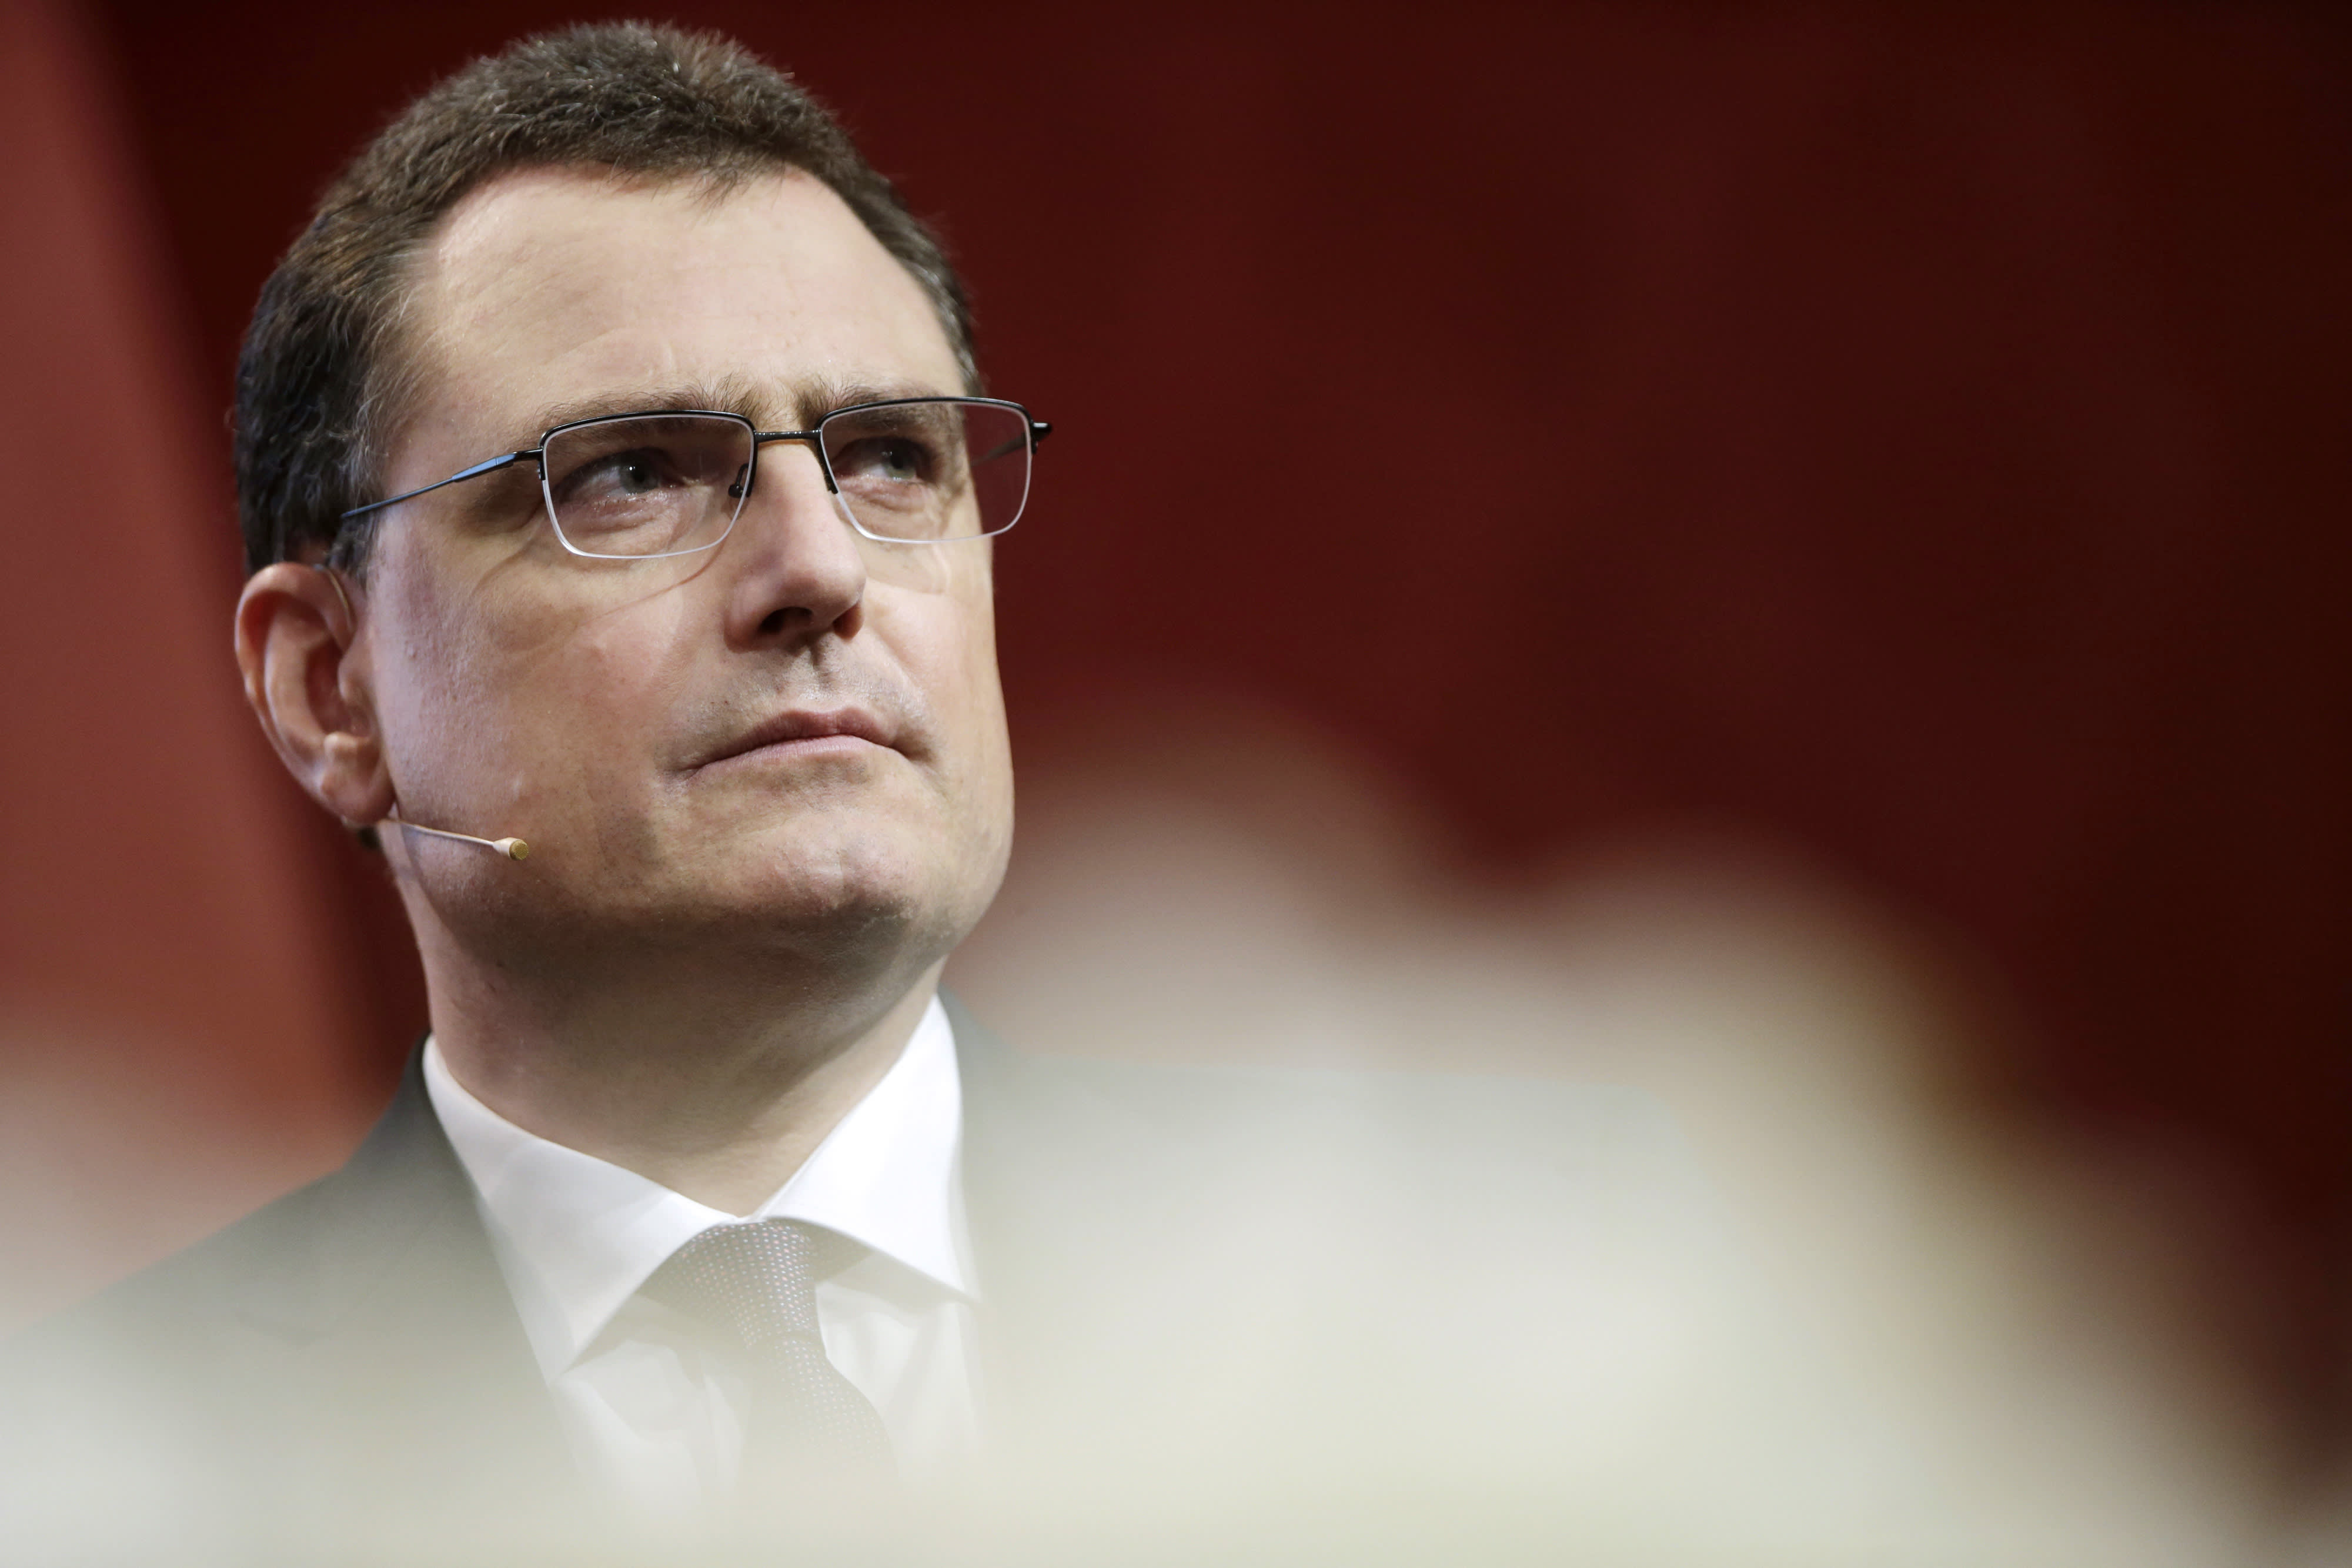 Swiss National Bank chief says policy will stay the course despite uptick in inflation